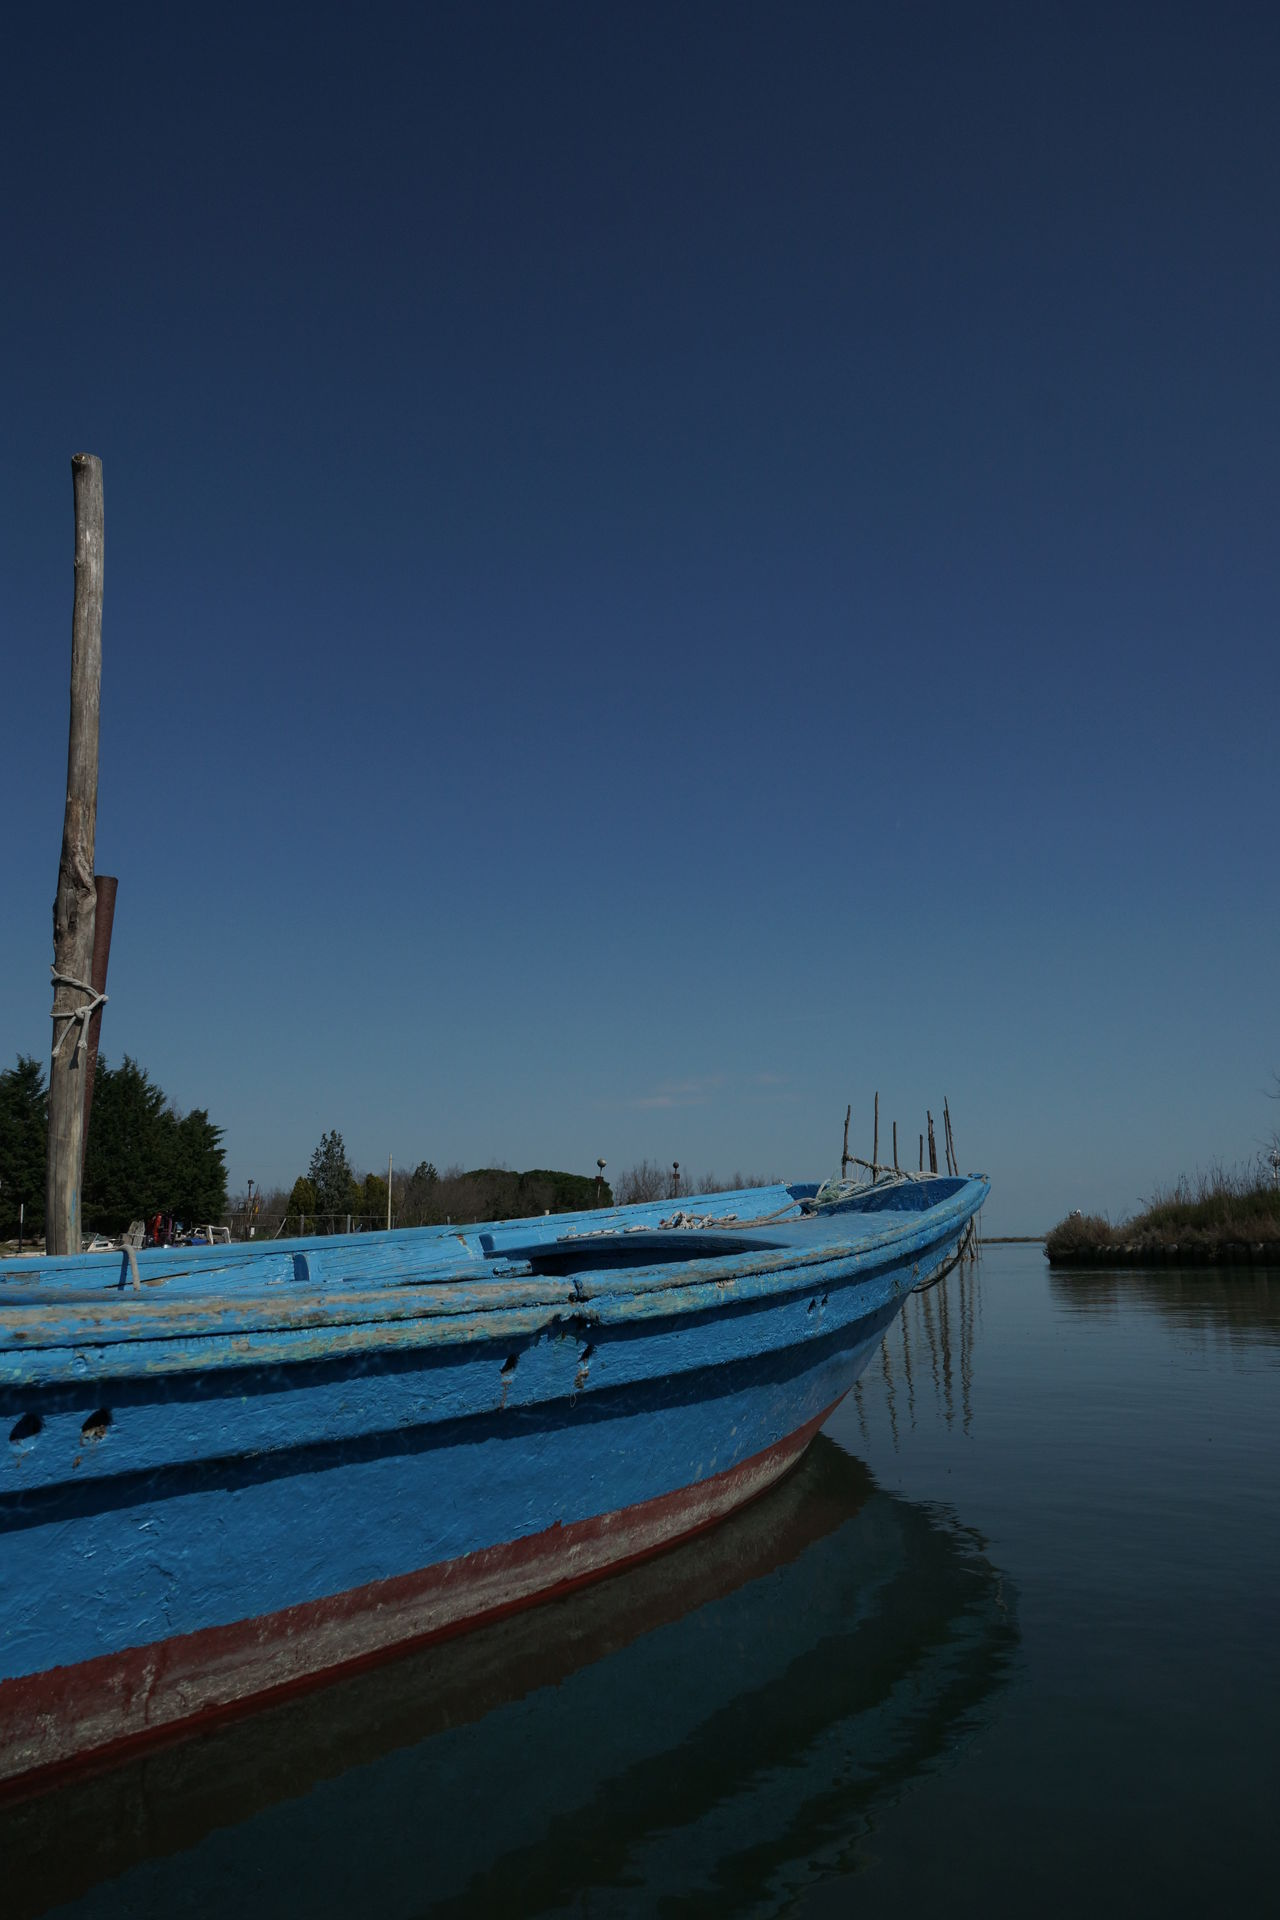 Fishing boat in Torcello, near Venice Anchored Anchored Boats Beauty In Nature Blue Blue Sky Boat Canal Channel Clear Sky Day Fishing Boat Mode Of Transport Moored Nature Nautical Vessel No People Outdoors Scenics Sky Torcello Tranquil Scene Tranquility Transportation Venice Water